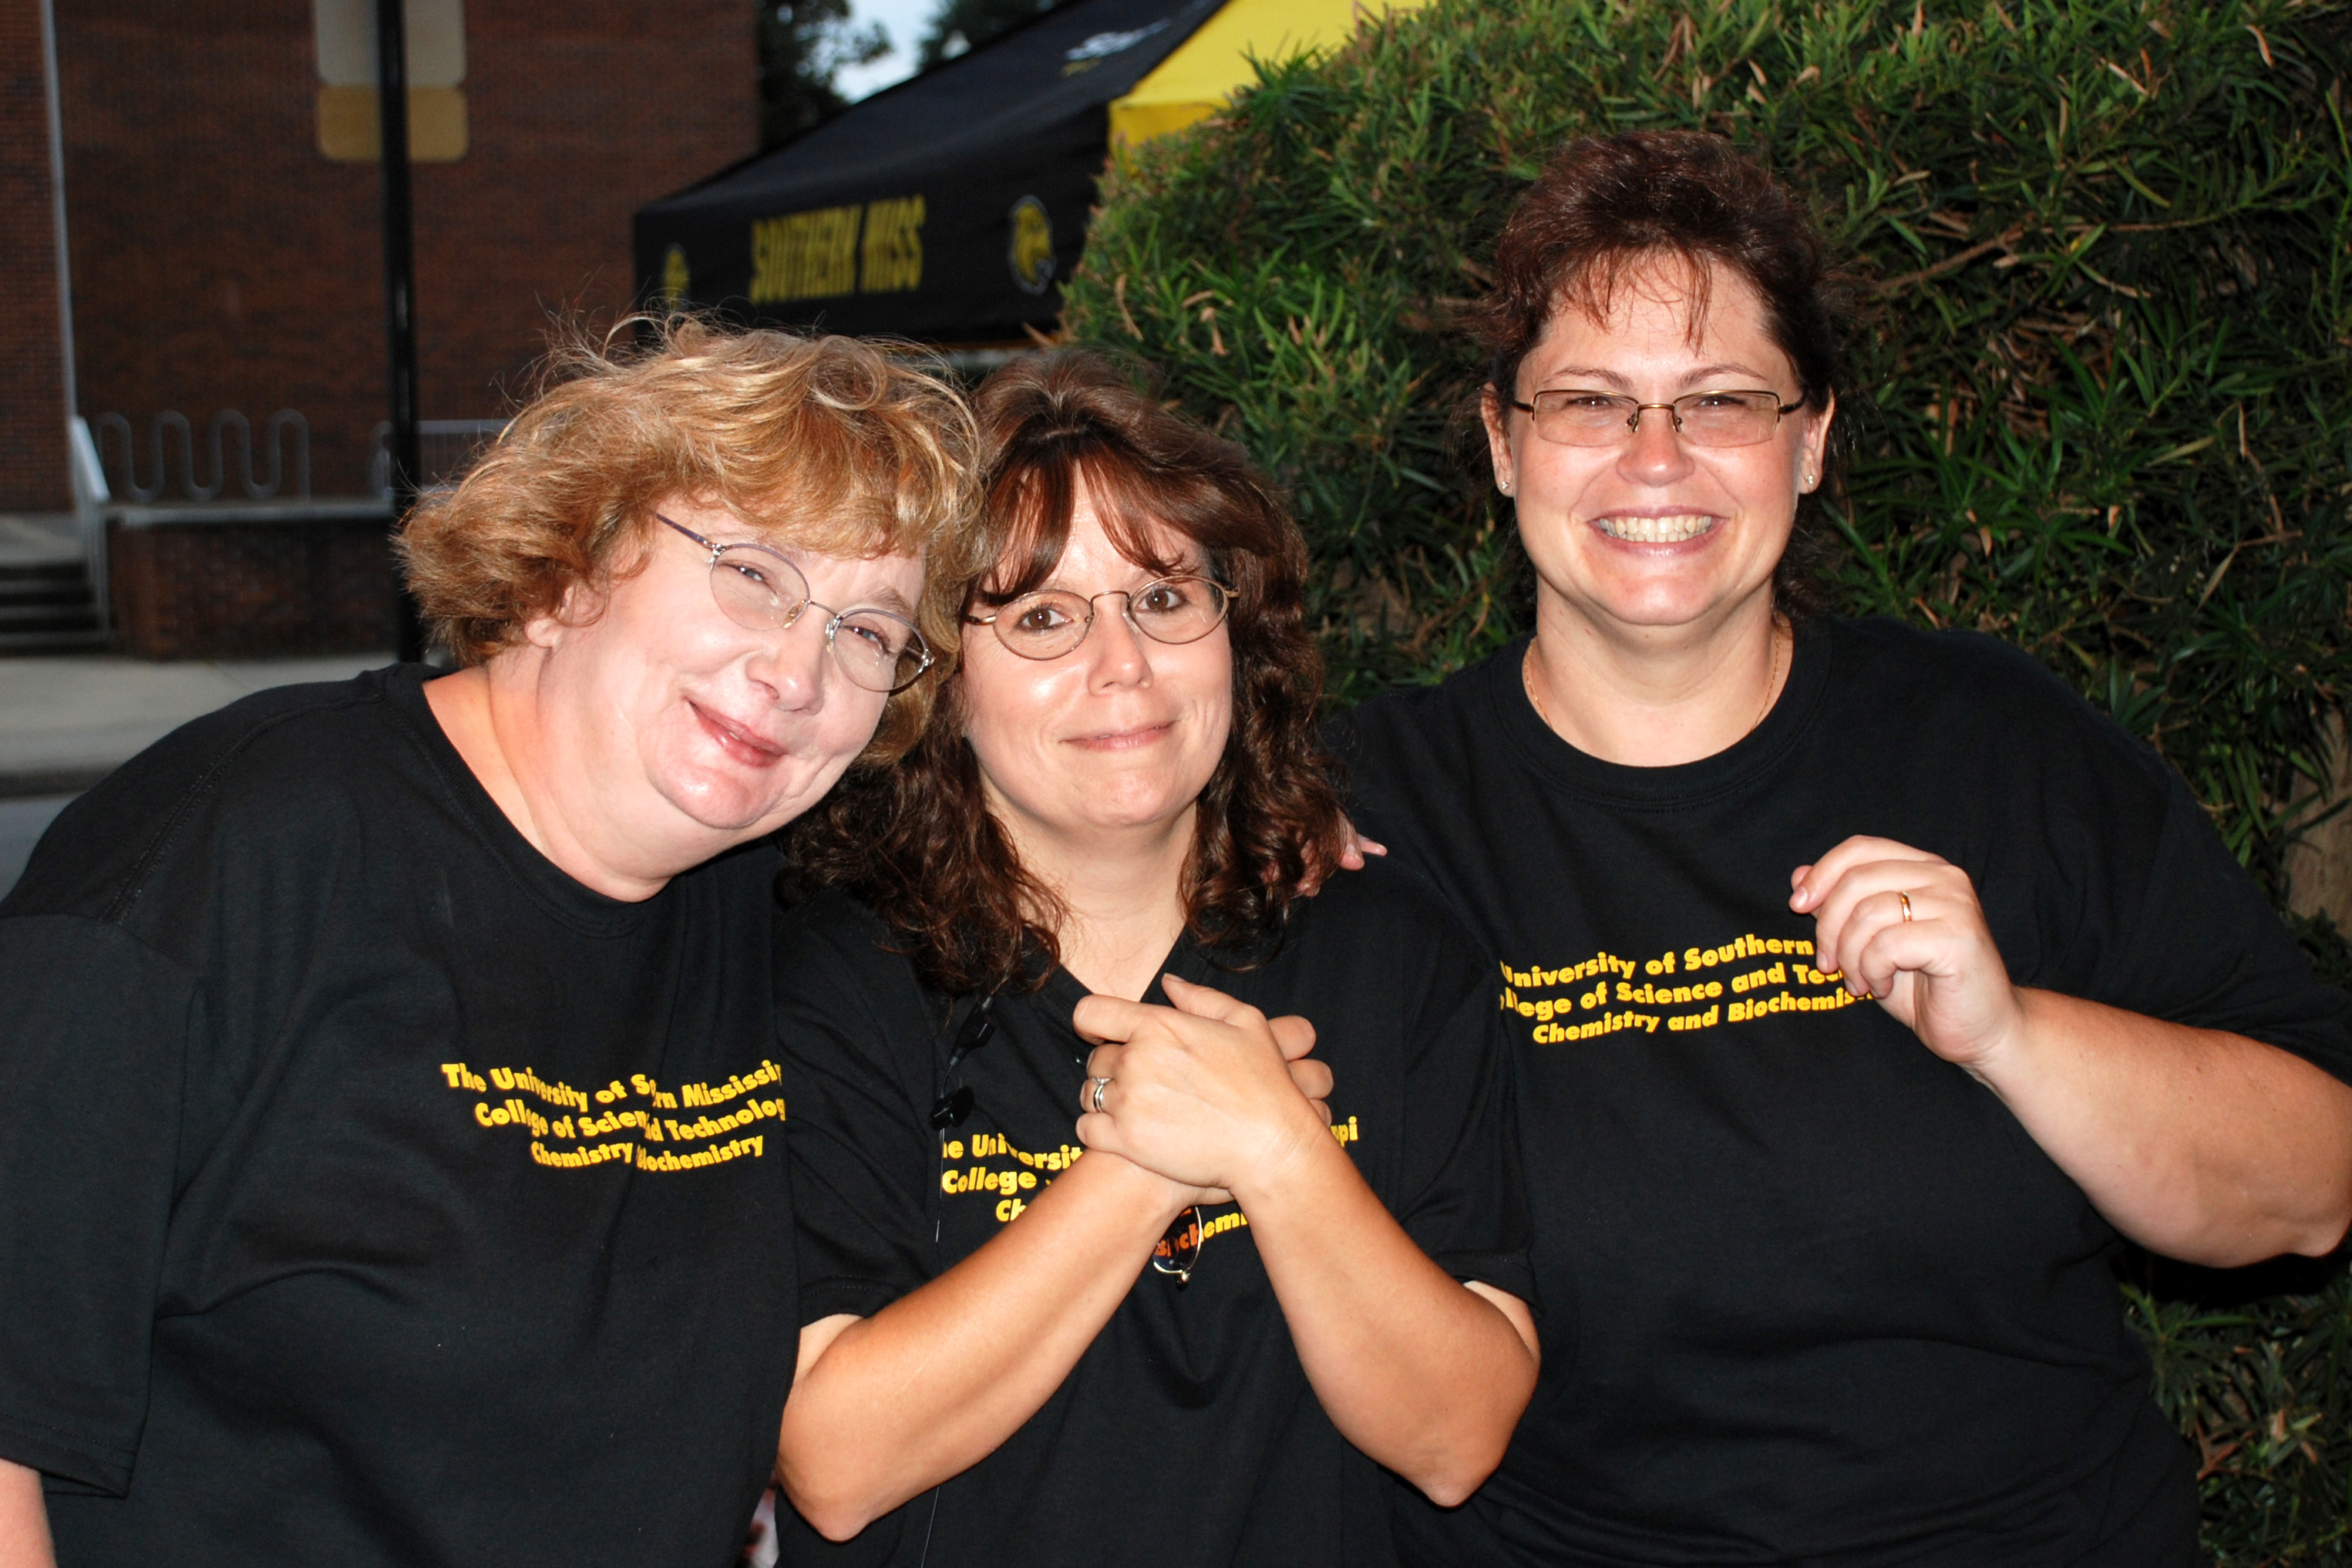 photograph of Debbie, Sharon, and Tina